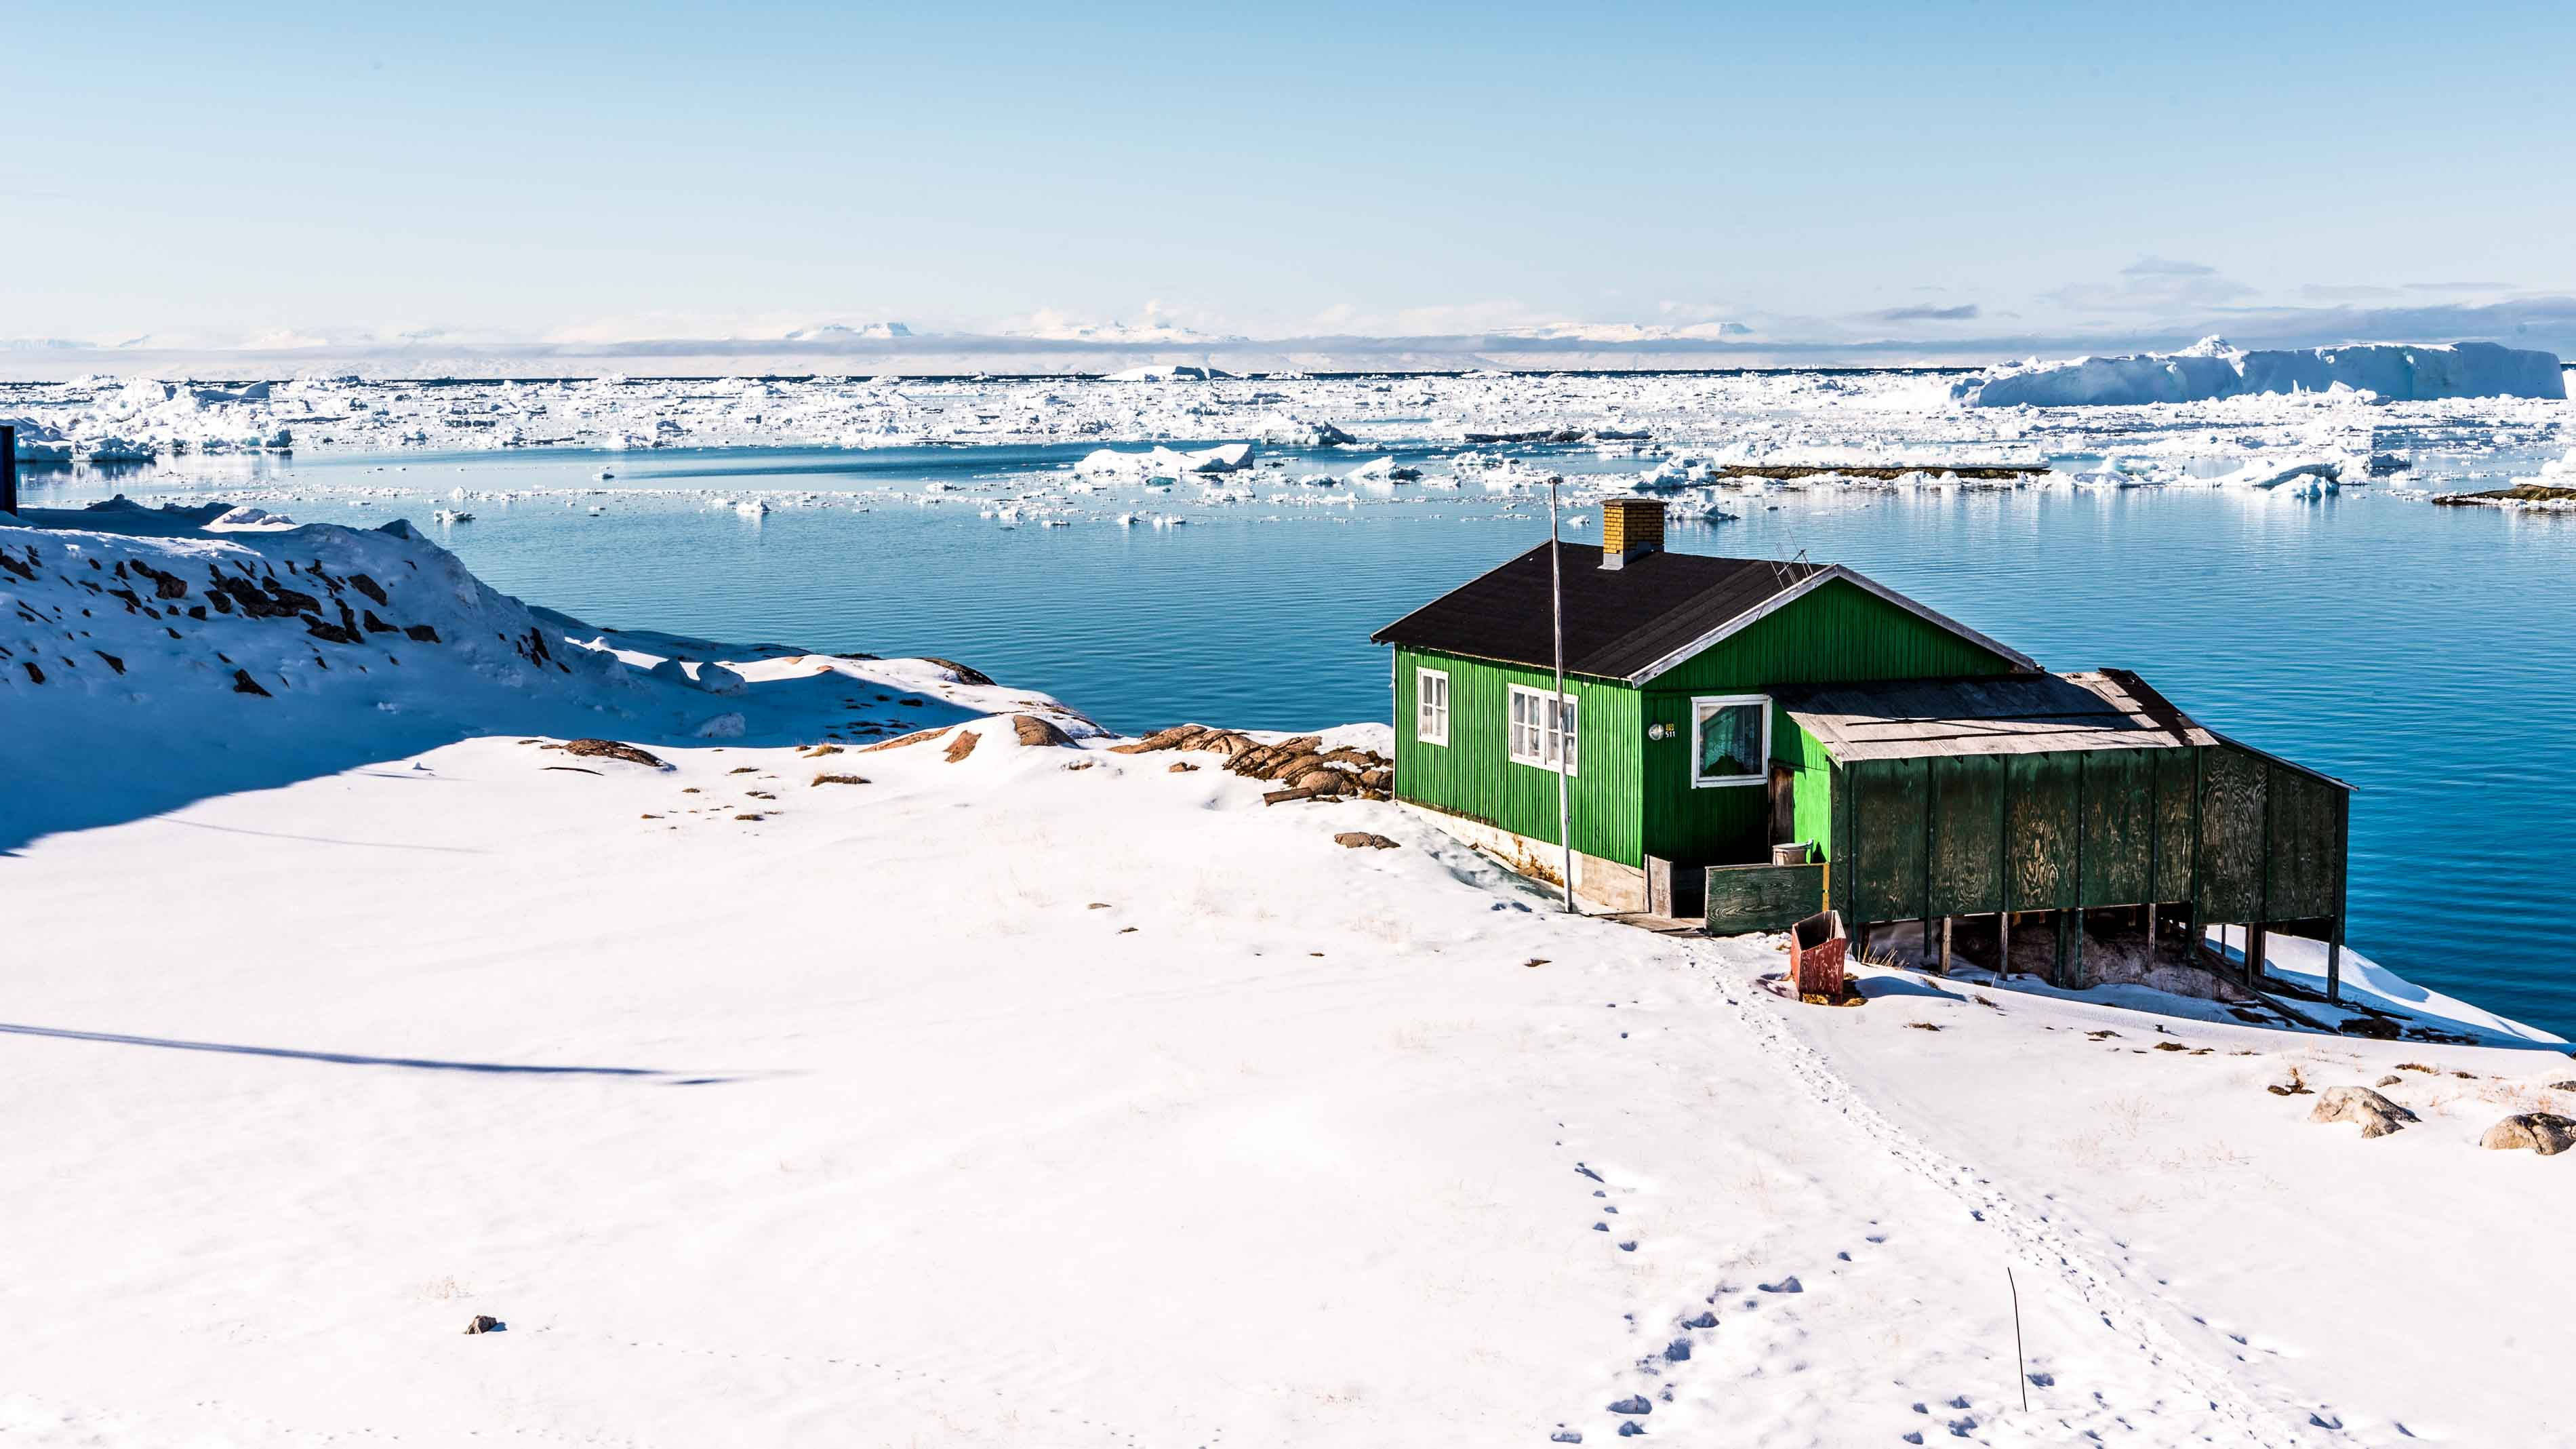 3232f02a2 Ilulissat, Greenland: The iceberg capital of the world | Adventure.com